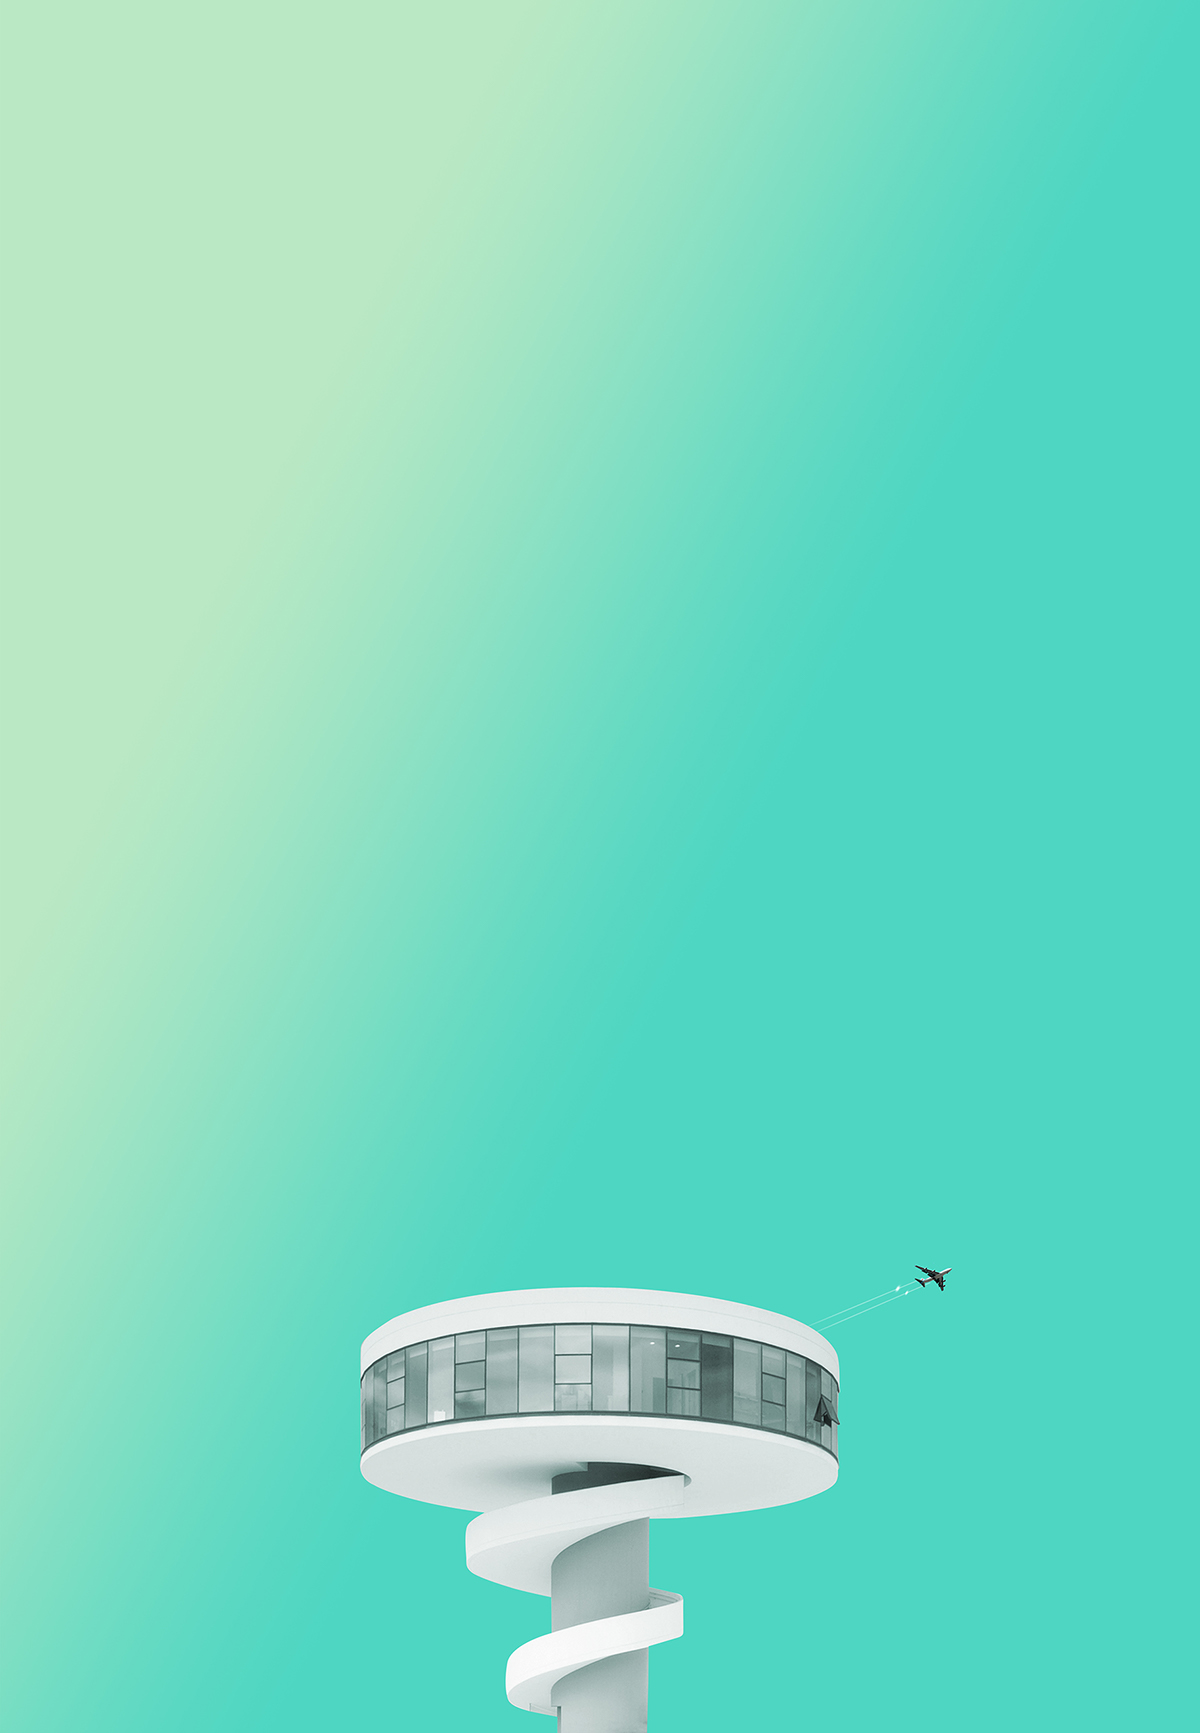 Art director creates beautiful minimalist images of for Minimalist art design